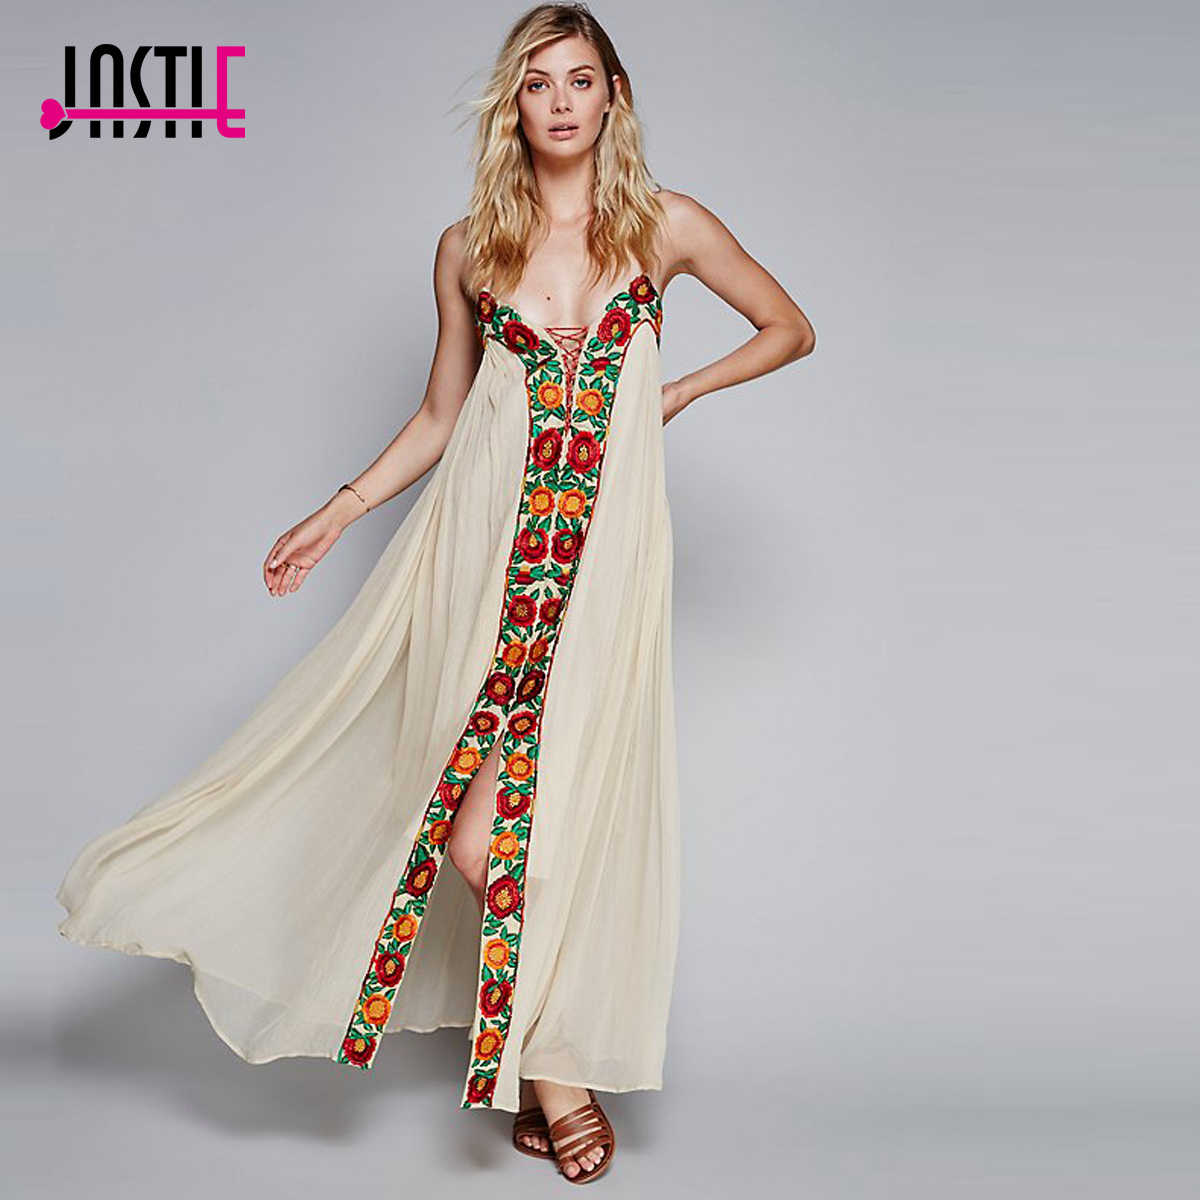 4add363273d ... Jastie Free-Flowing Maxi Dress Floral Embroidery Boho Dress V-Neck  Lace-Up ...